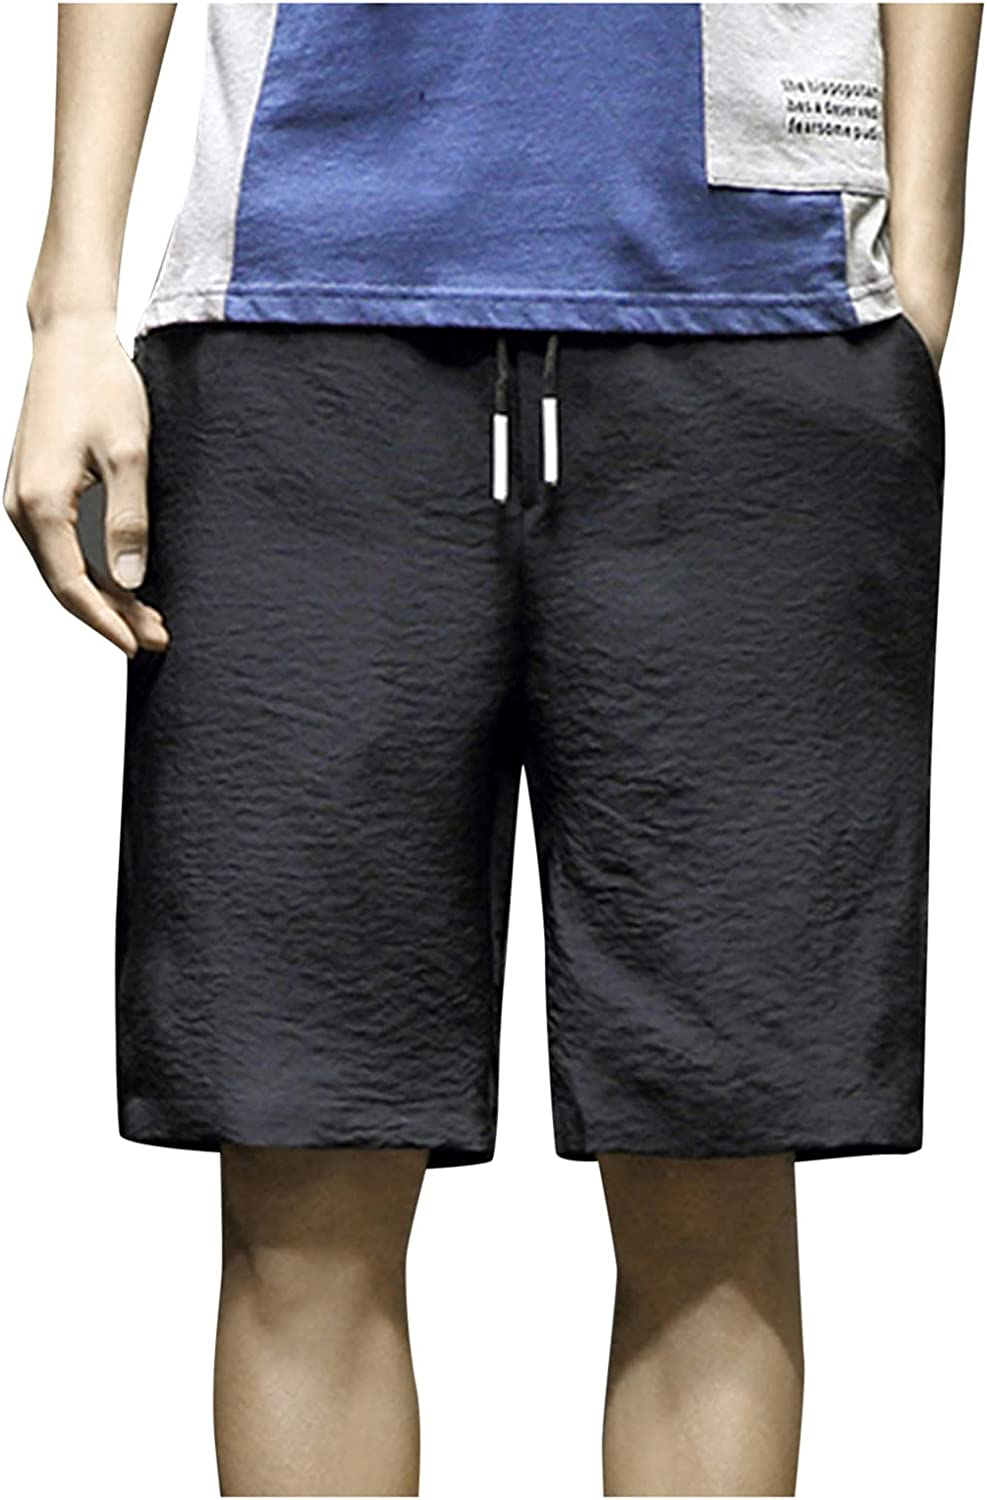 DIOMOR Fashion Ourdoor Shorts for Men 9 Inch Inseam Drawstring Cargo Shorts Pure Color Beach Trunks Elastic Waist Pants